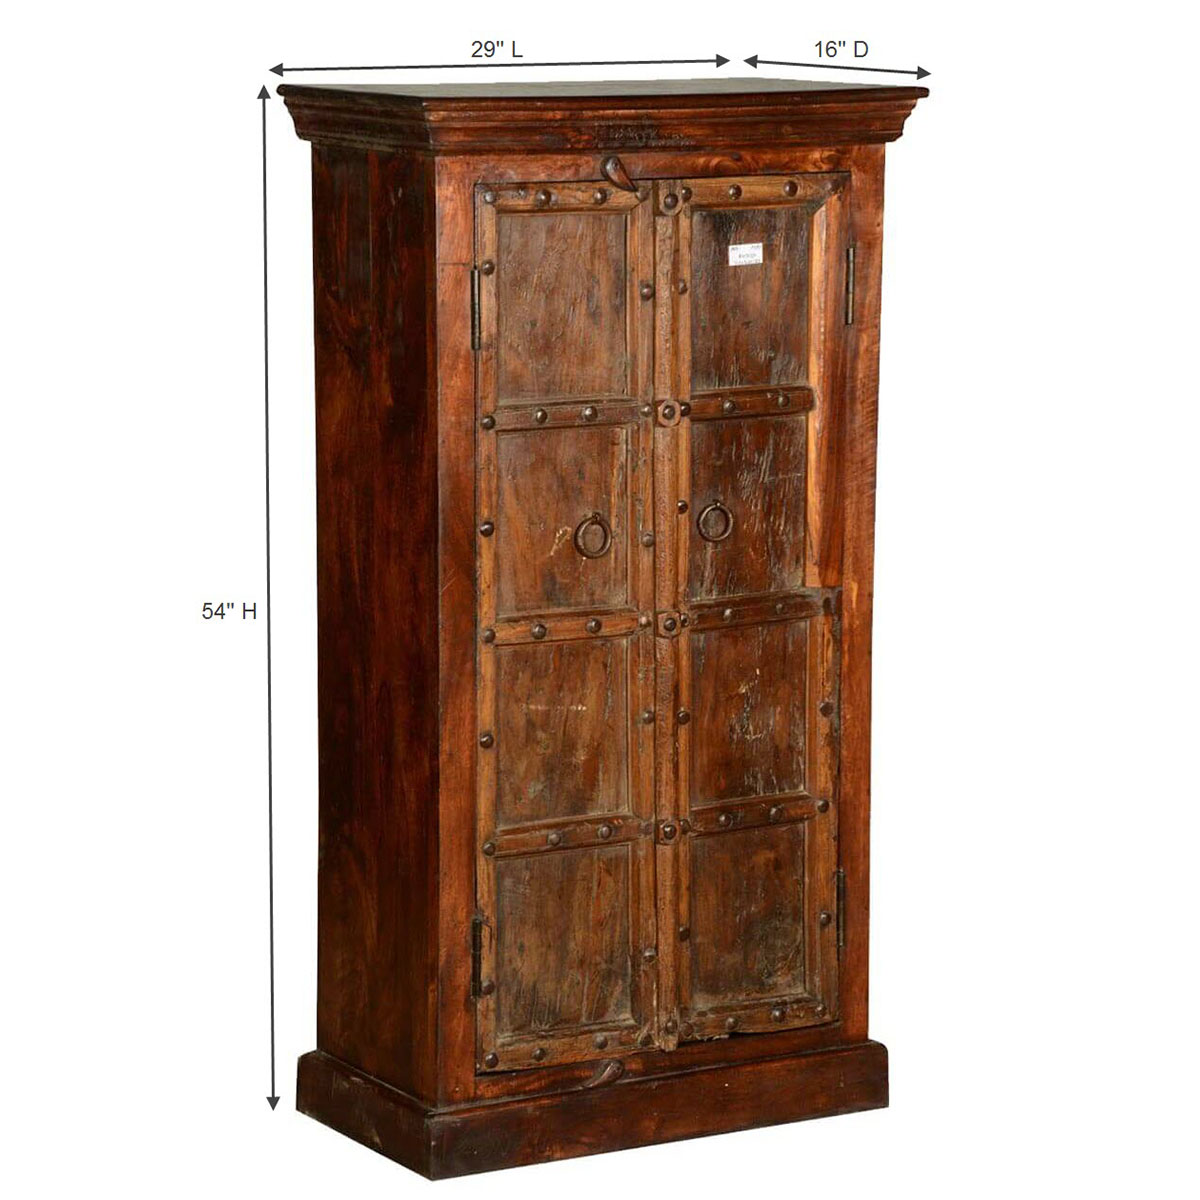 4257492ha also Small Engine Lifts likewise 216088 furthermore 28 Rustic Wood Doors Interior Interior Rustic Wood Double D further 4. on rental apartment kitchen cabi